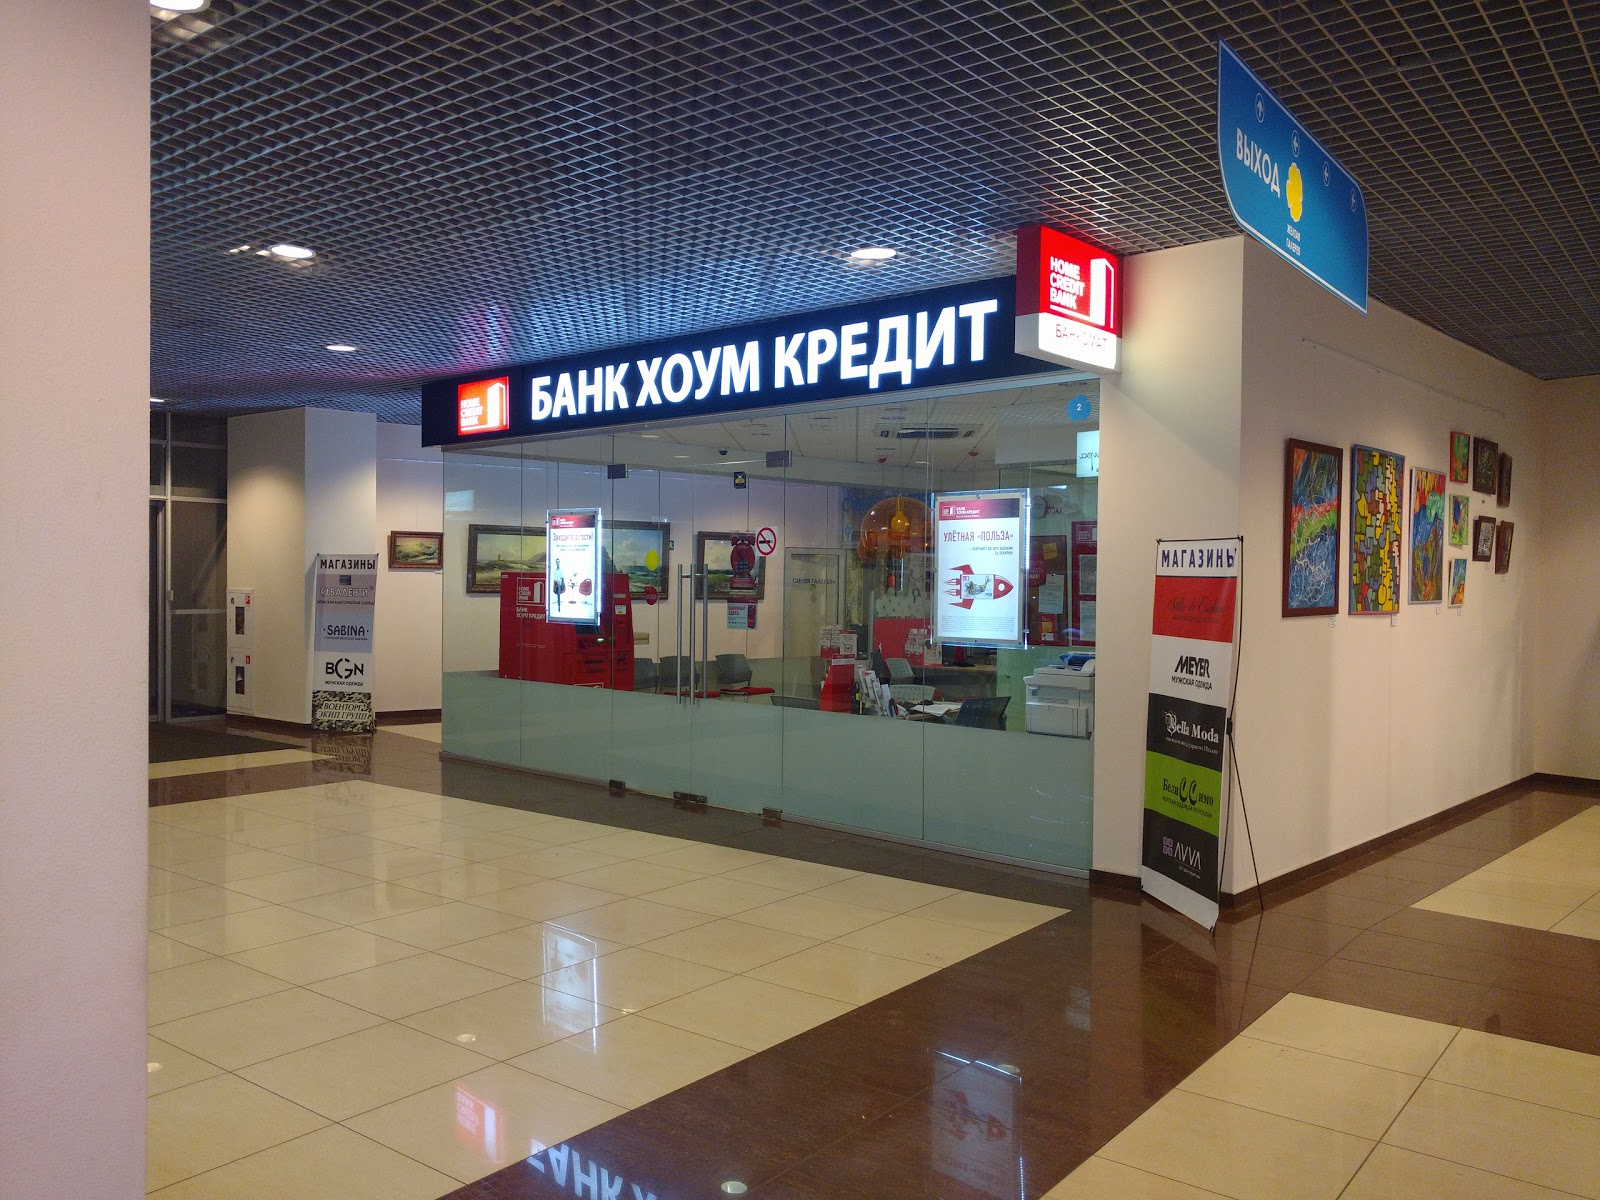 б 8 кредит check status of capital one credit card application